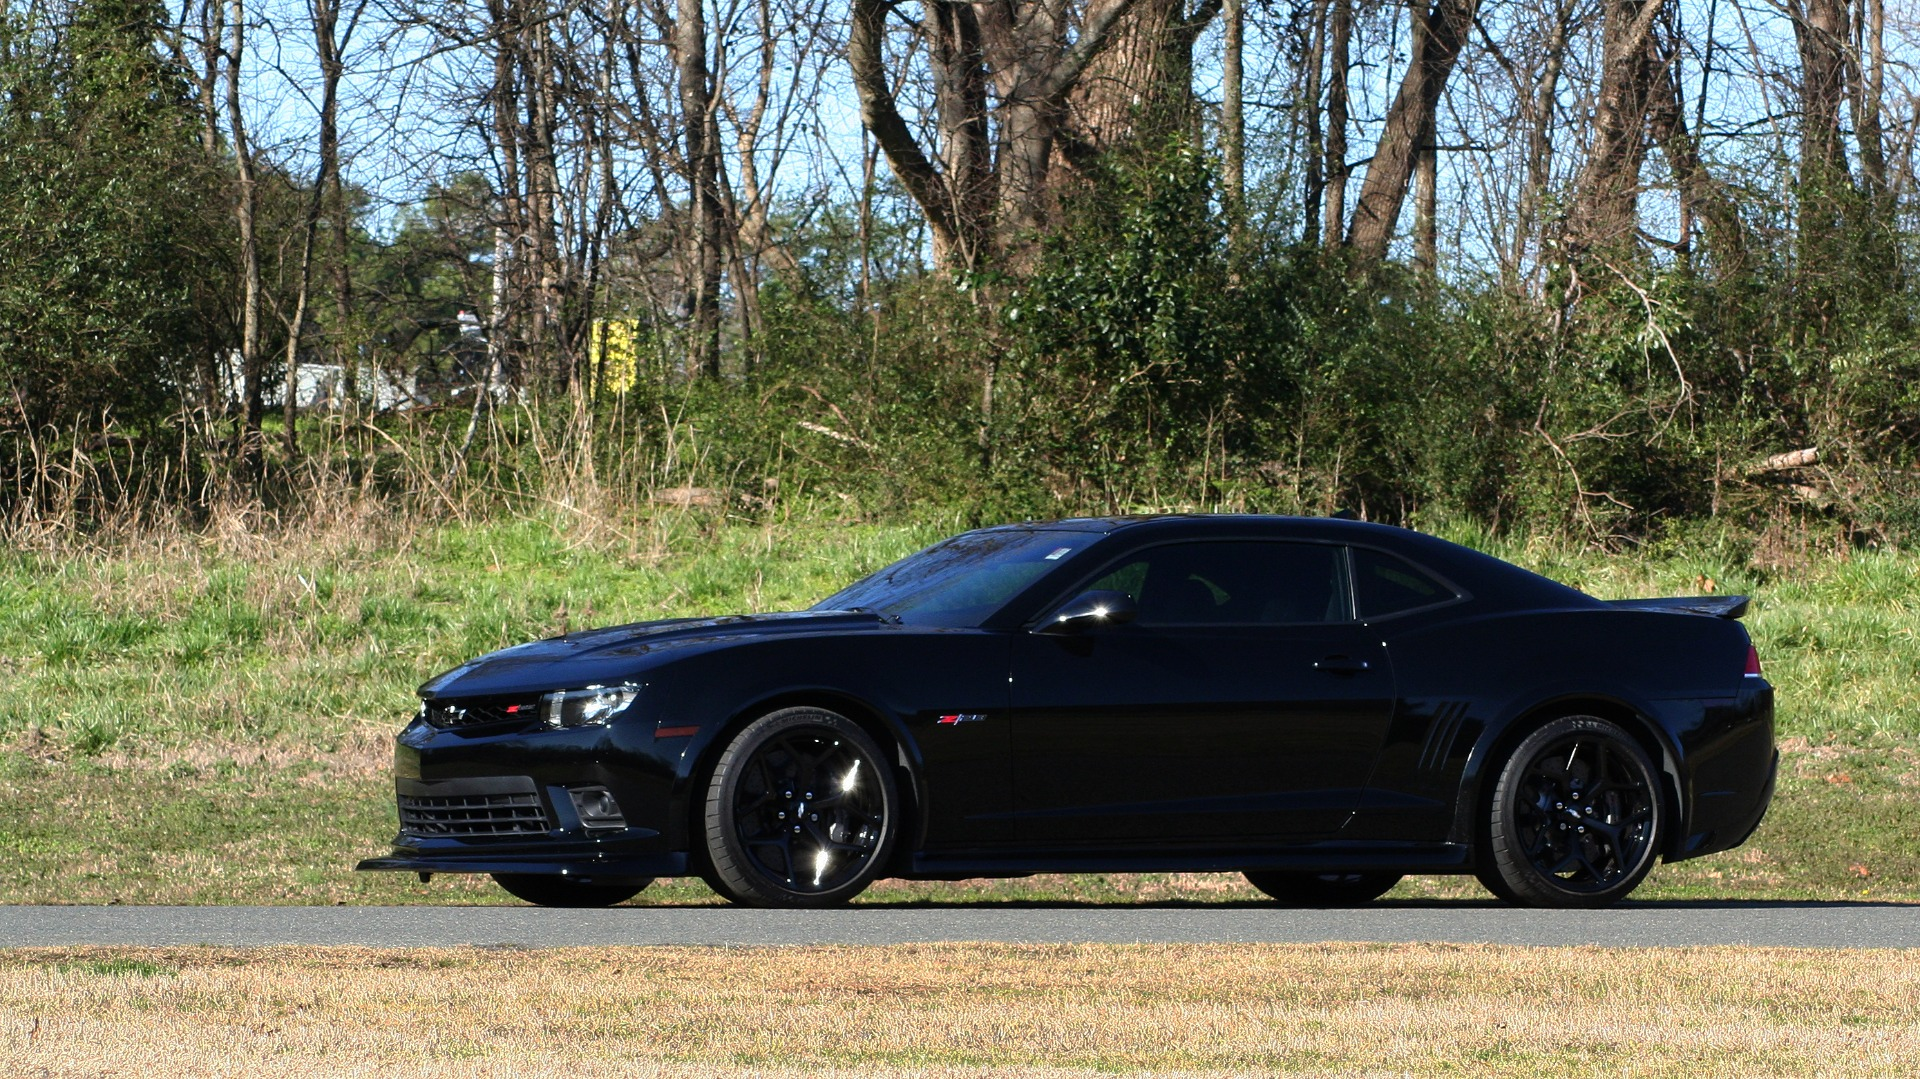 Used 2014 Chevrolet CAMARO Z/28 / 427 7.0L V8 505HP / RADIO / AIR CONDITIONING for sale Sold at Formula Imports in Charlotte NC 28227 2